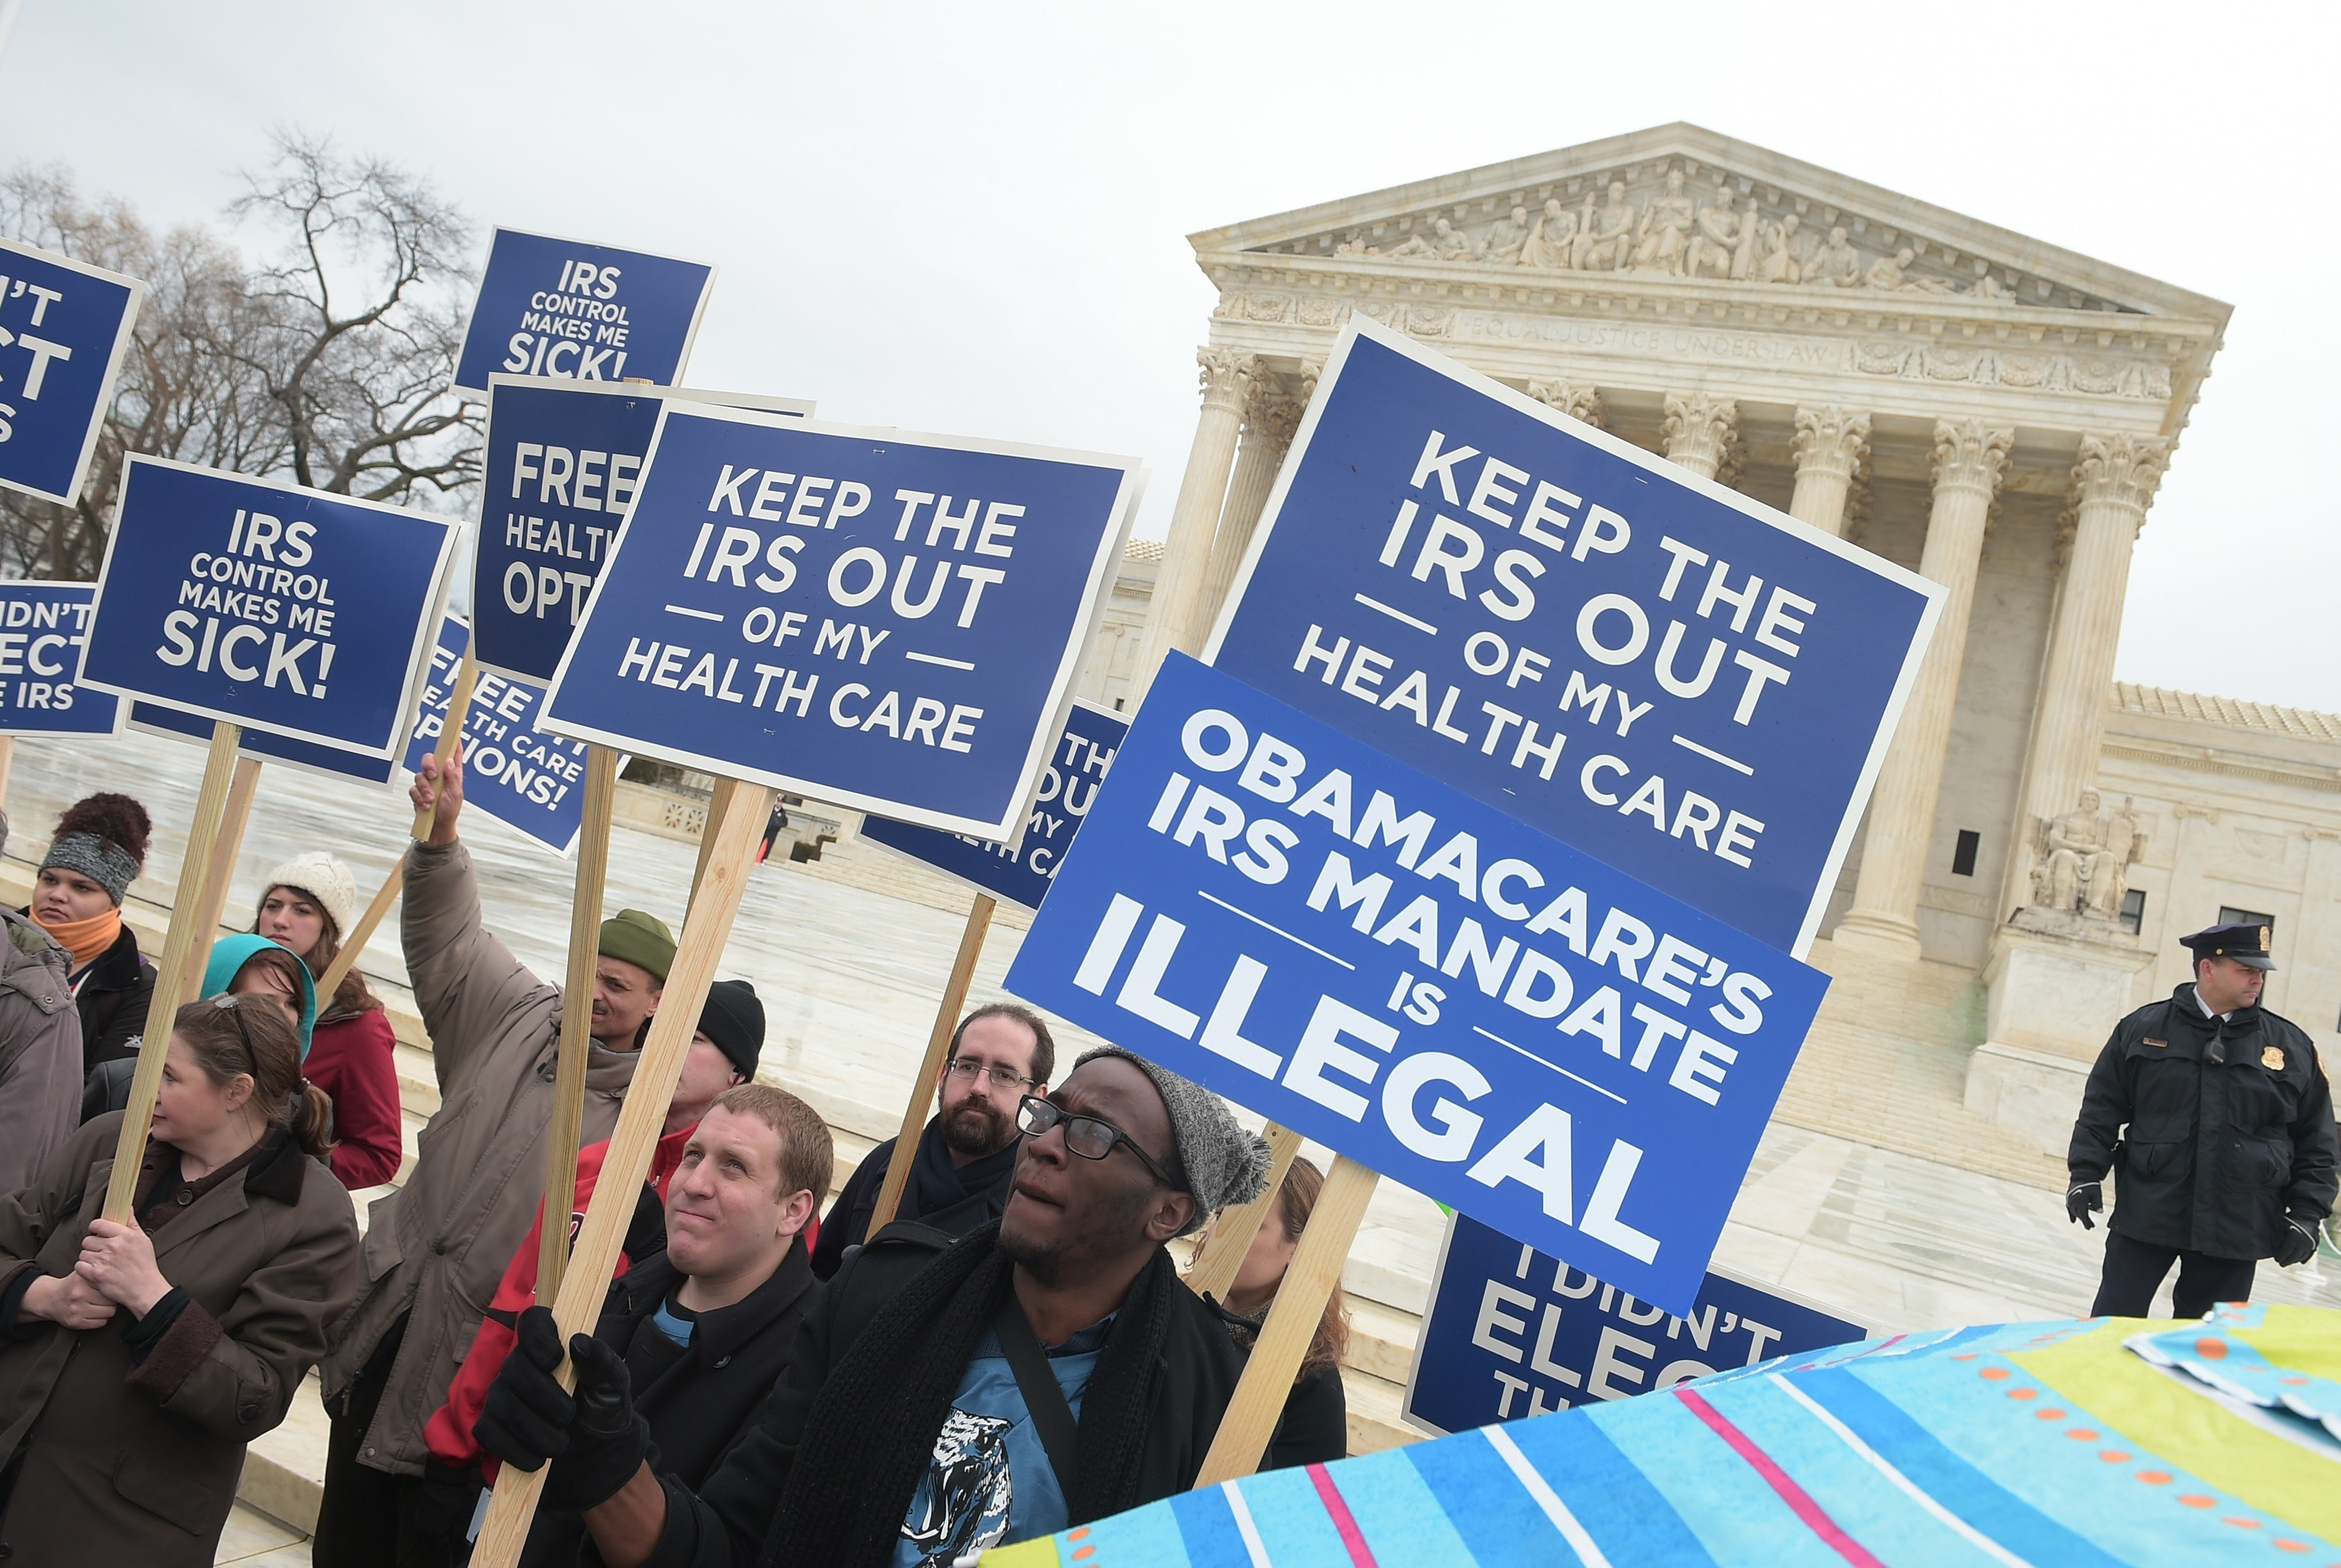 """Protestors hold placards challenging """"Obamacare"""" outside of the Supreme Court on March 4, 2015. (Mandel Ngan/AFP/Getty Images)"""